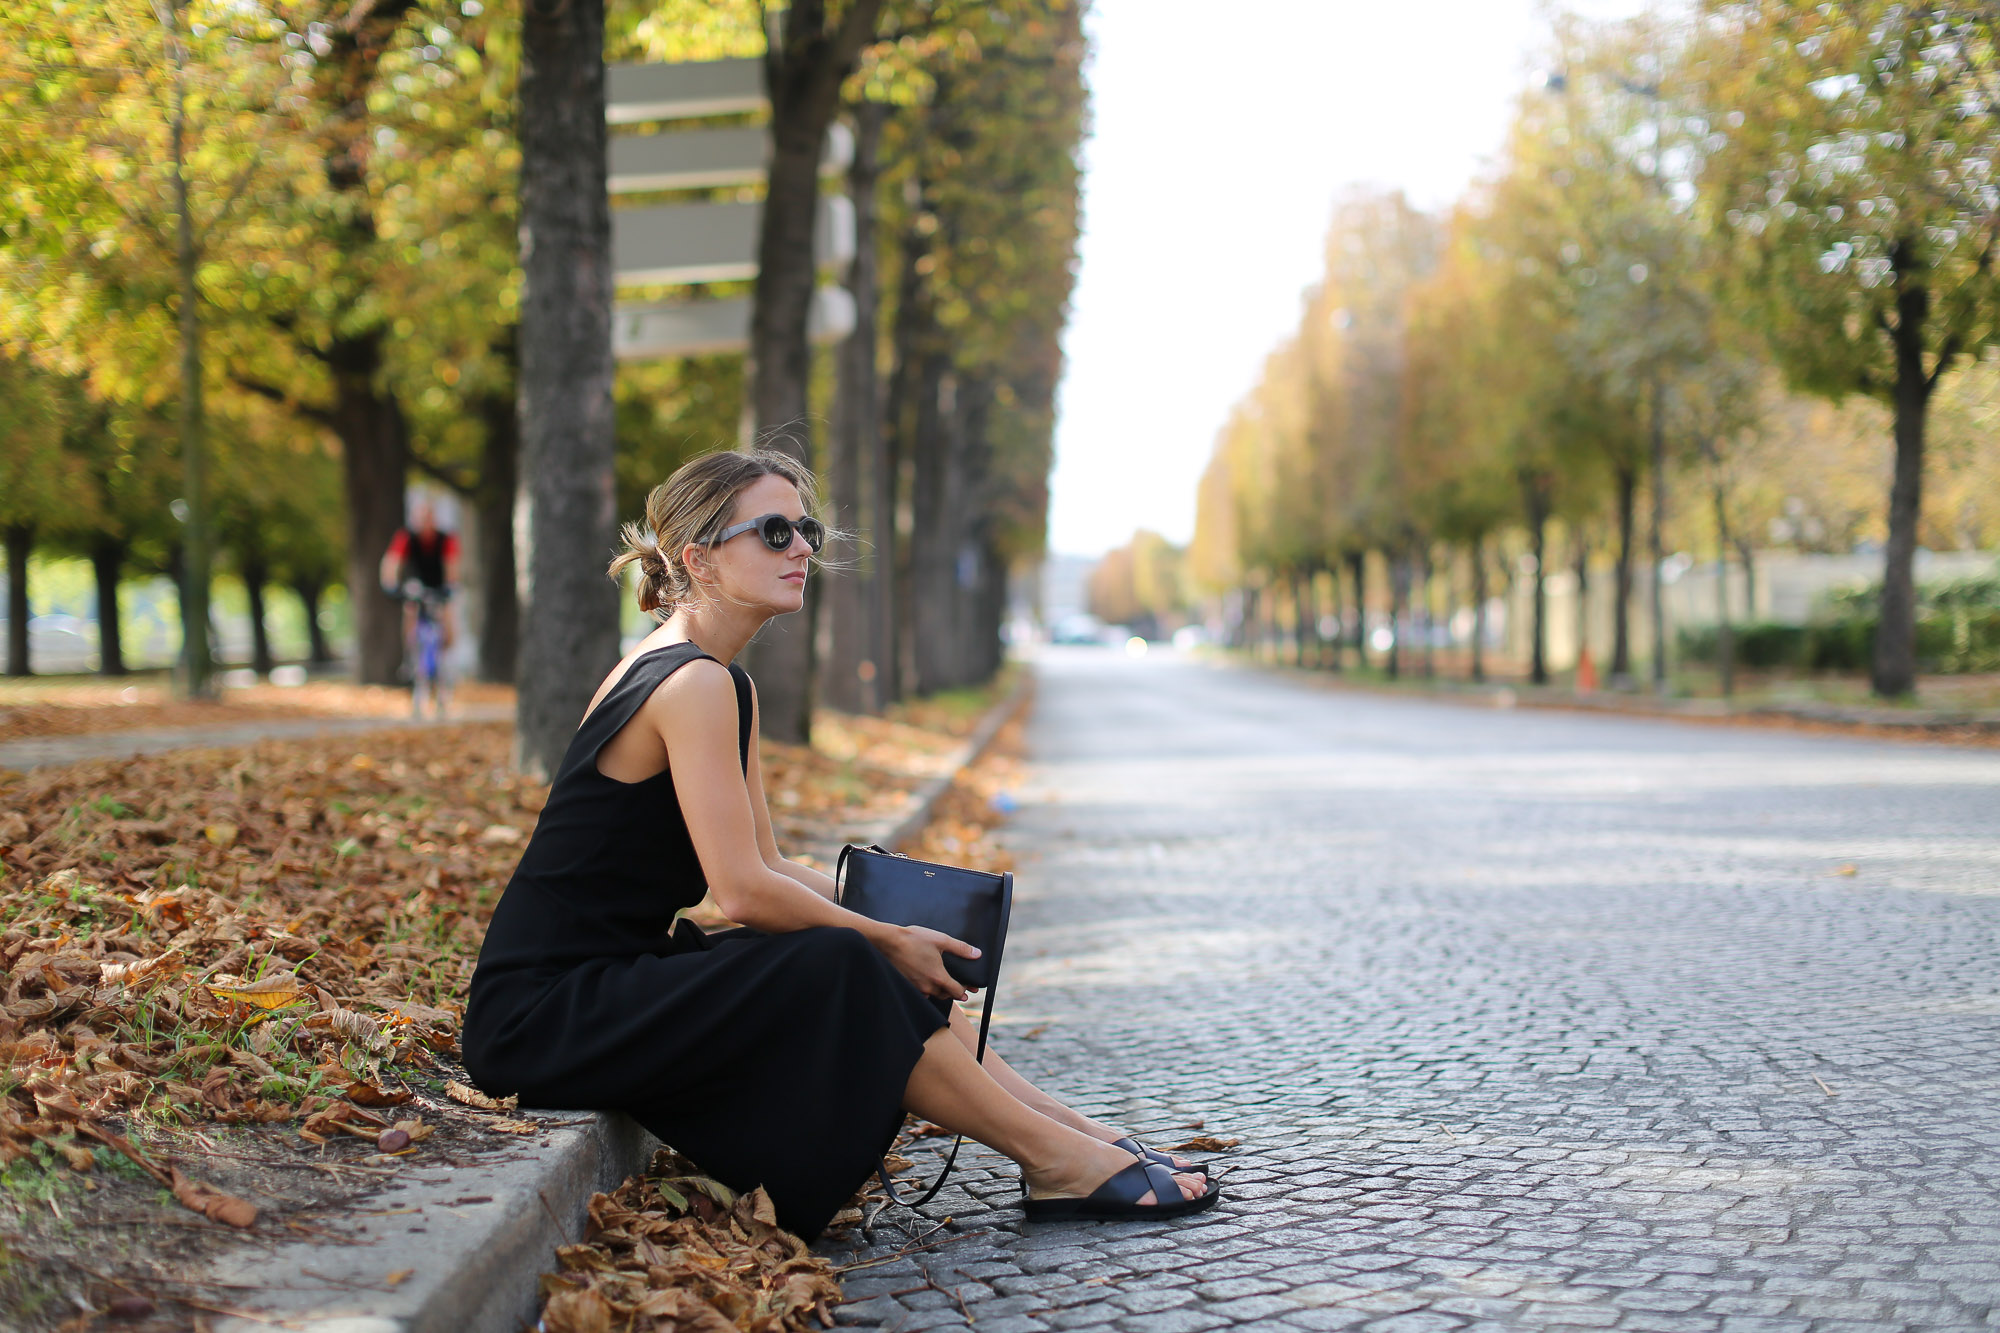 Clochet-paris-fashion-week-streetstyle-zara-jumpsuit-sliders-celine-trio-bag-1-9